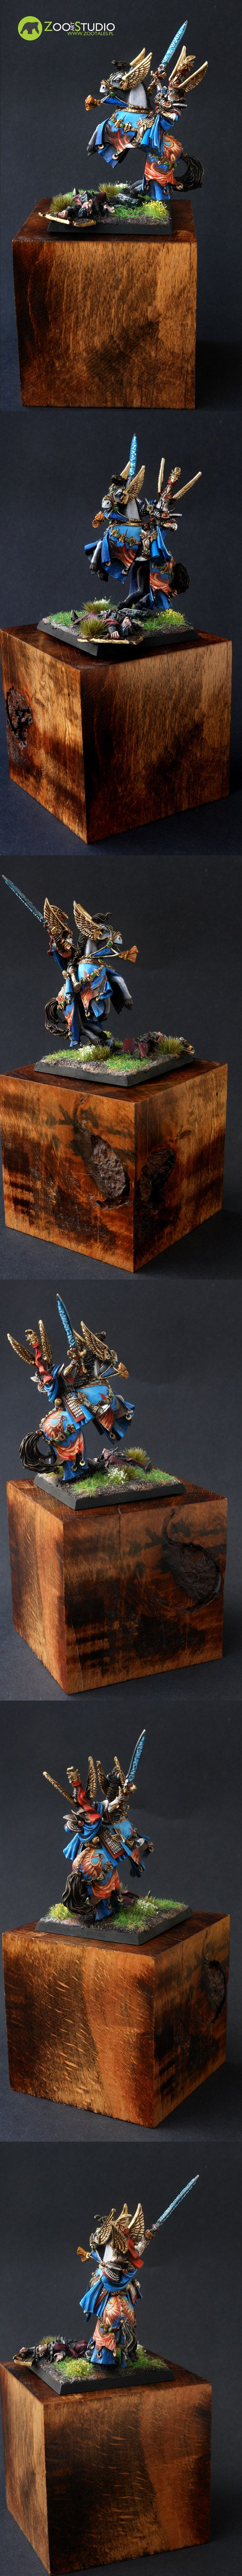 Tyrion from Games Workshop; painted by Doe from Zoo Art Studio  www.zootales.pl